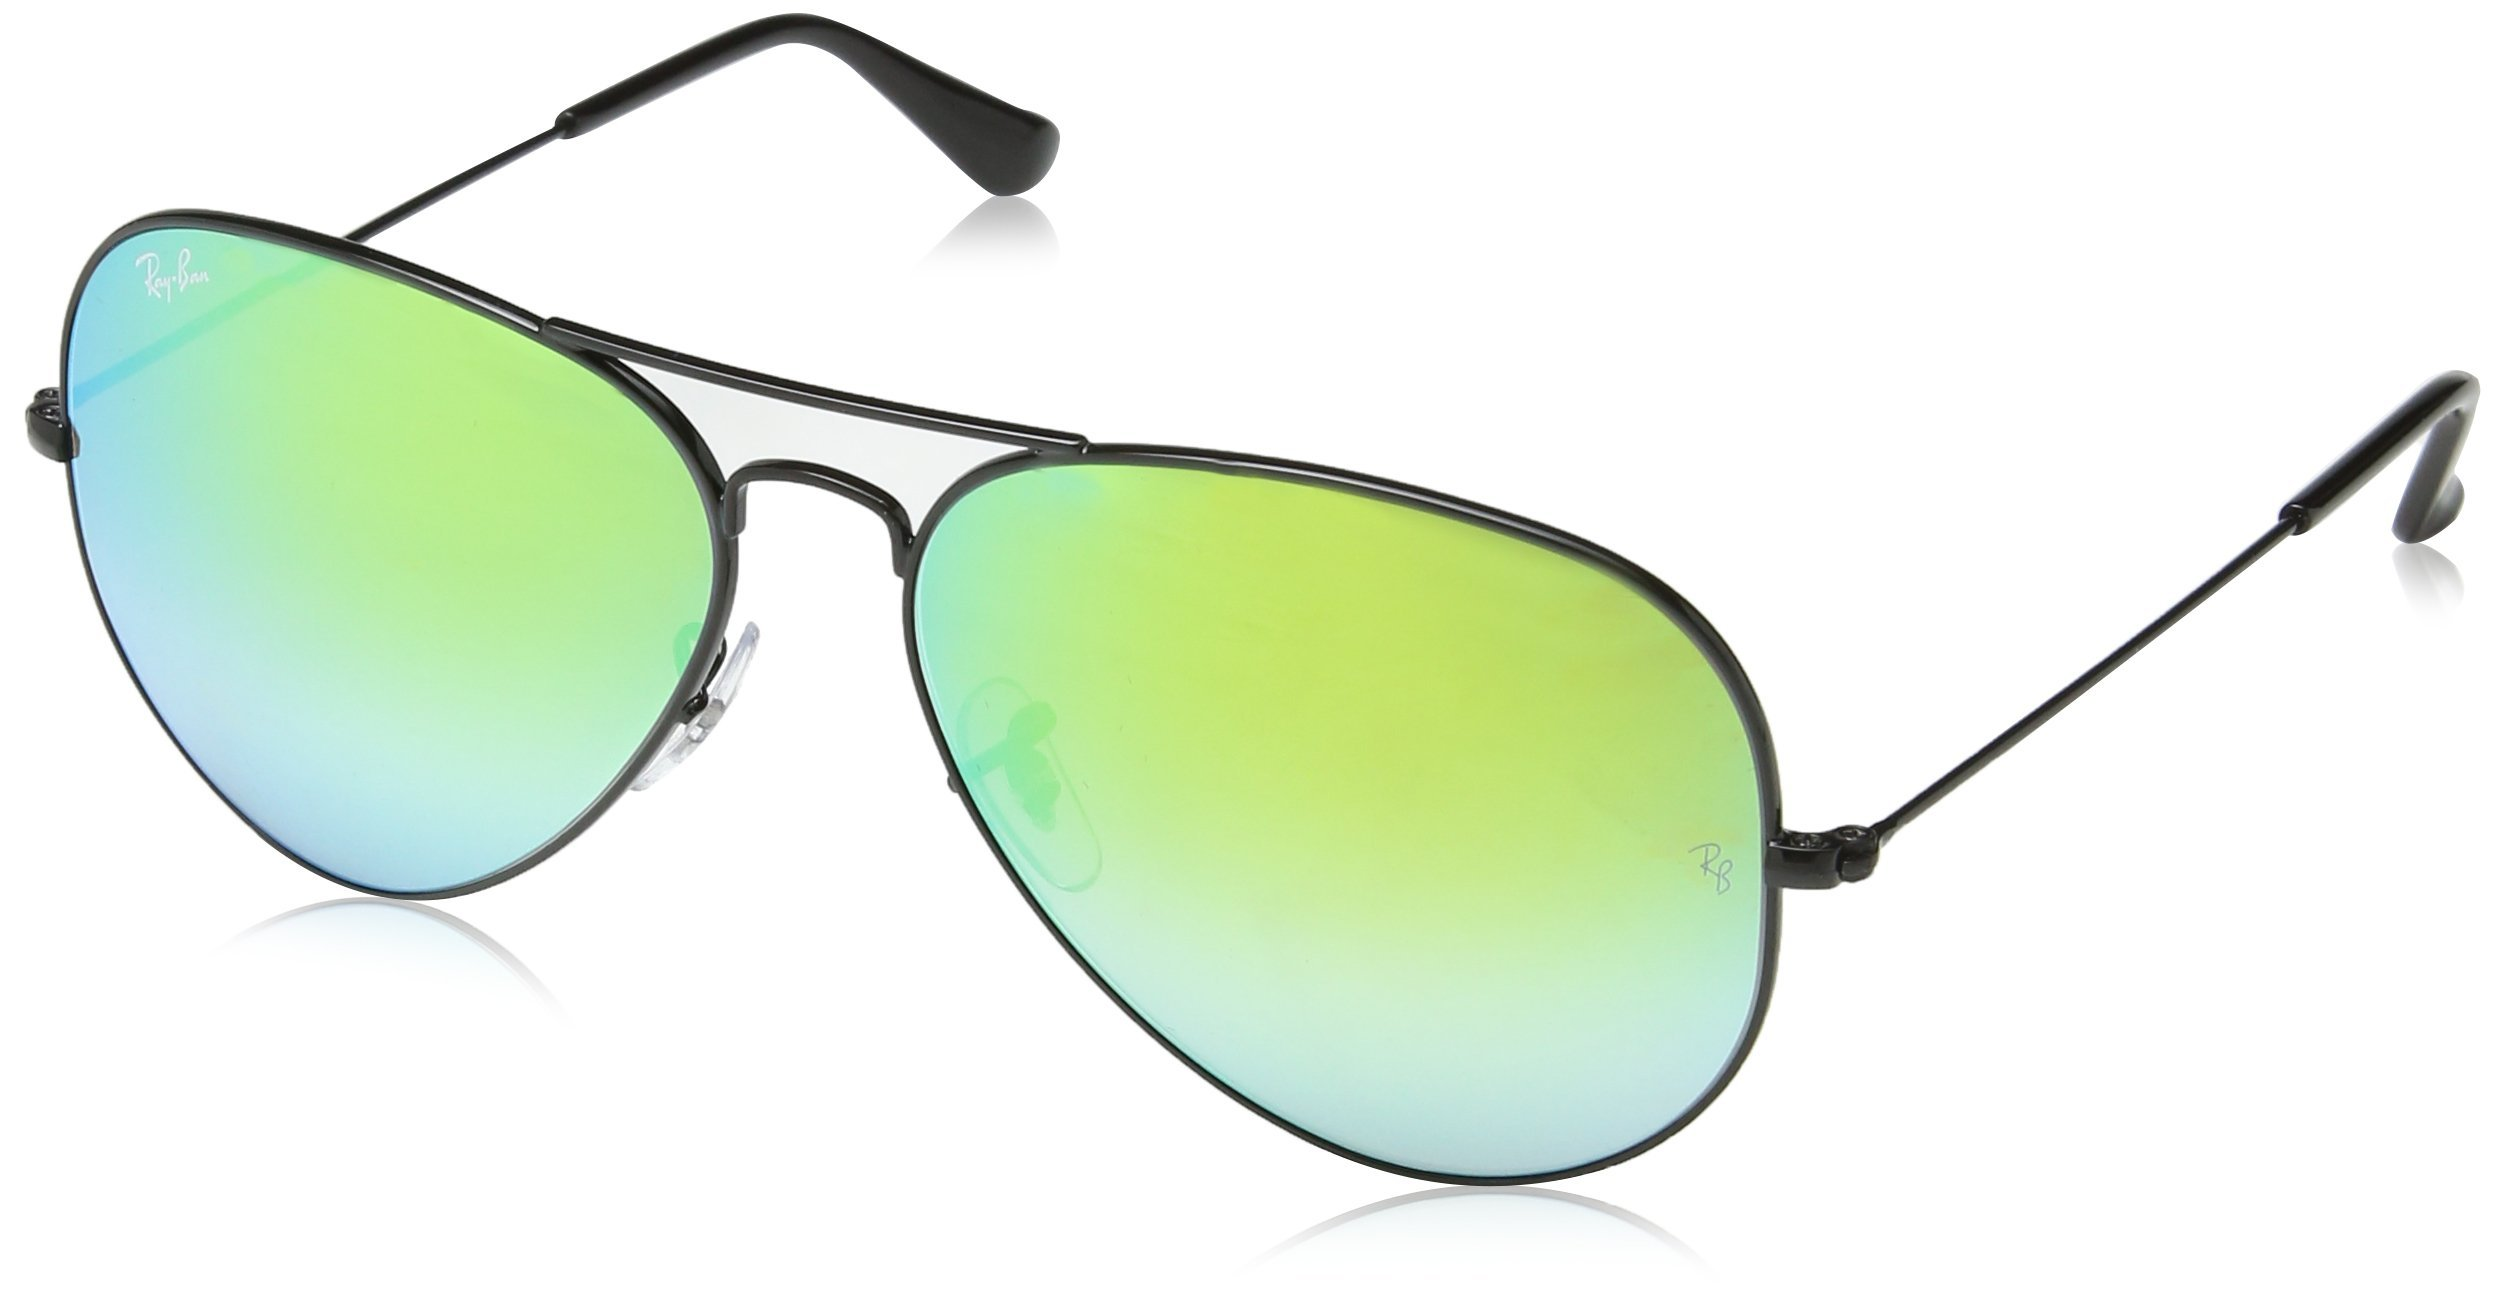 Ray-Ban AVIATOR LARGE METAL - SHINY BLACK Frame MIRROR GRADIENT GREEN Lenses 58mm Non-Polarized by Ray-Ban